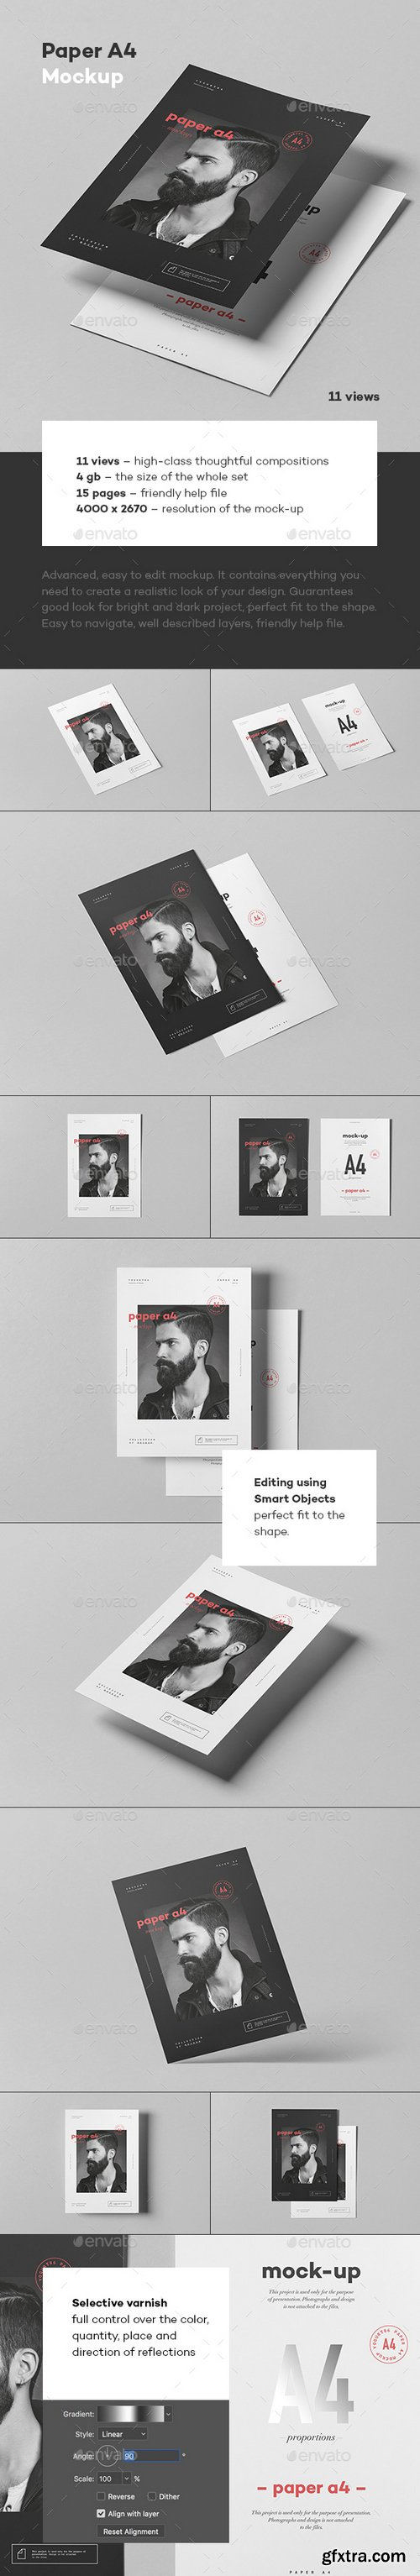 Graphicriver - Paper A4 Mock-up 22262923